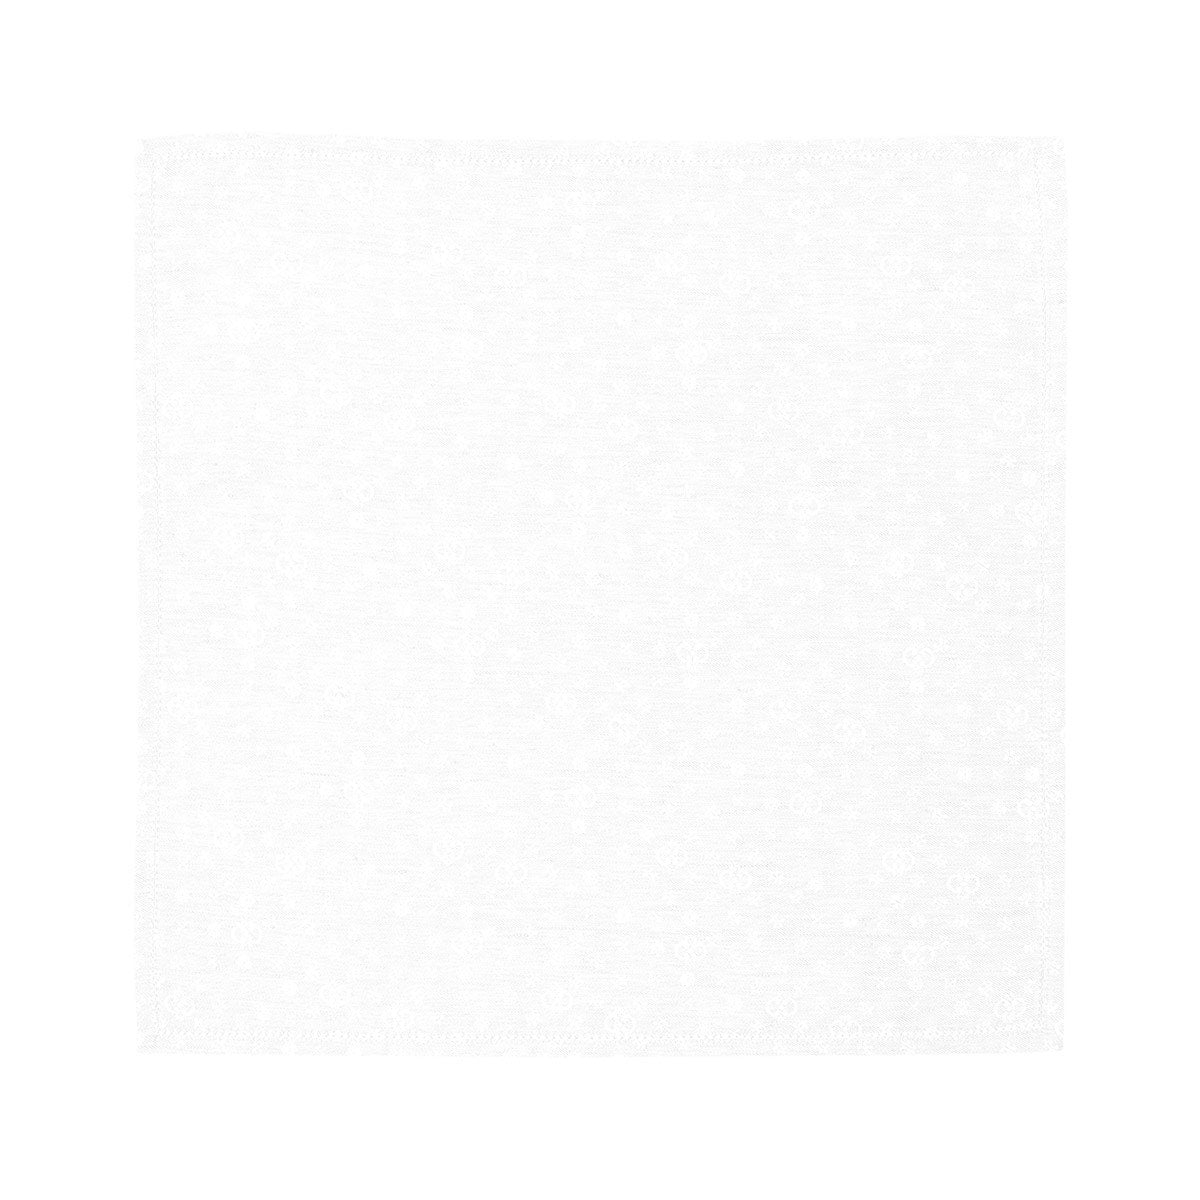 Atria Blanc White Table Linen Yves Delorme Fig Linens - White Easter Tablecloth